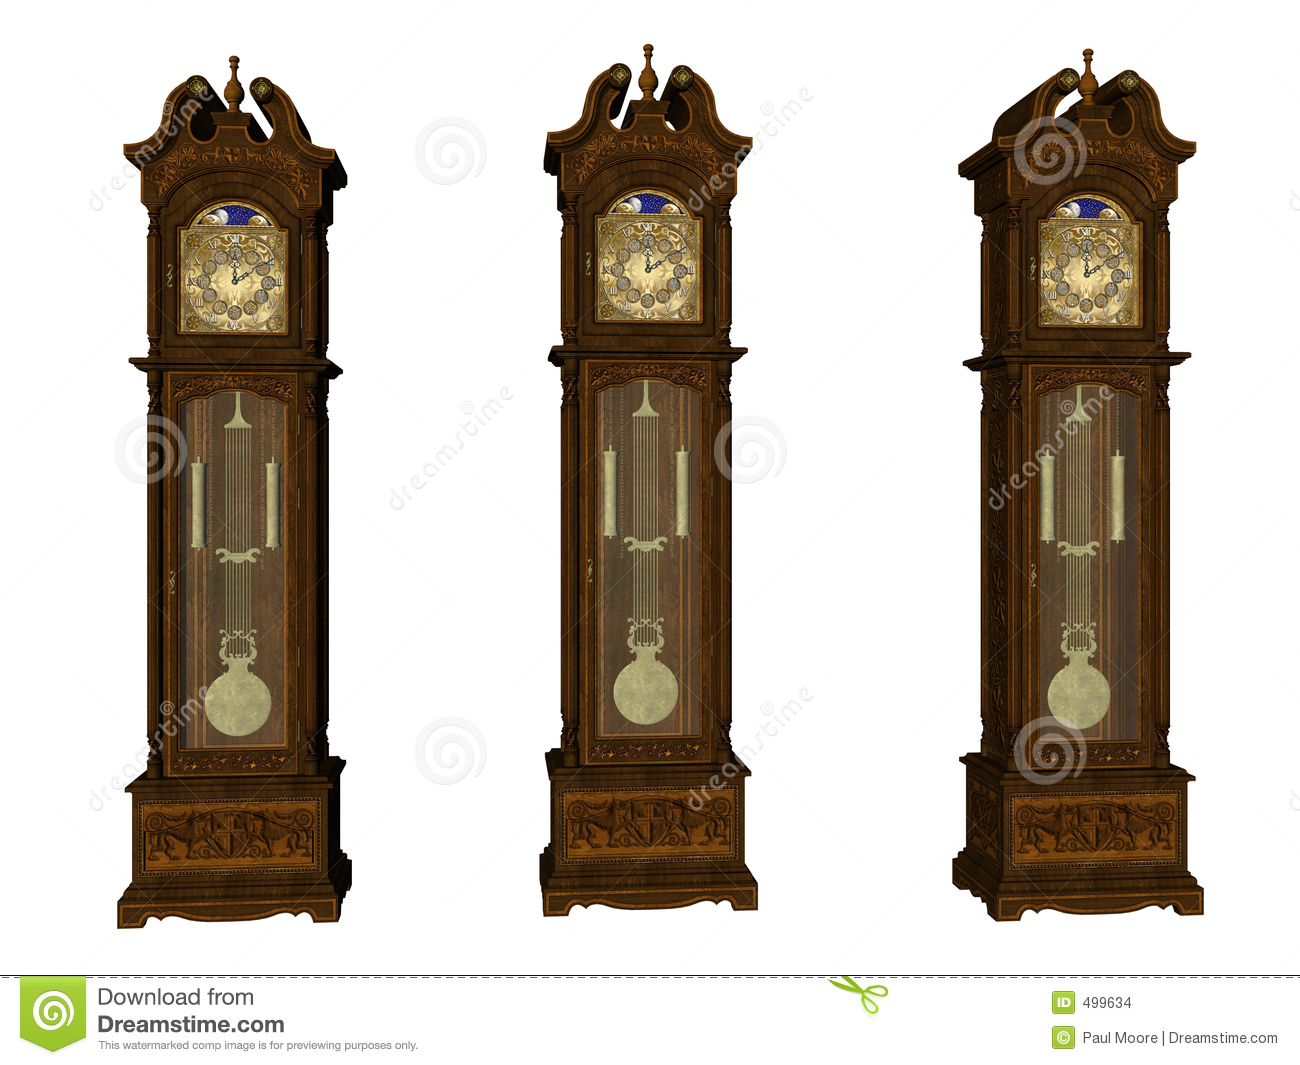 Grandfather Clocks Stock Images - Image: 499634